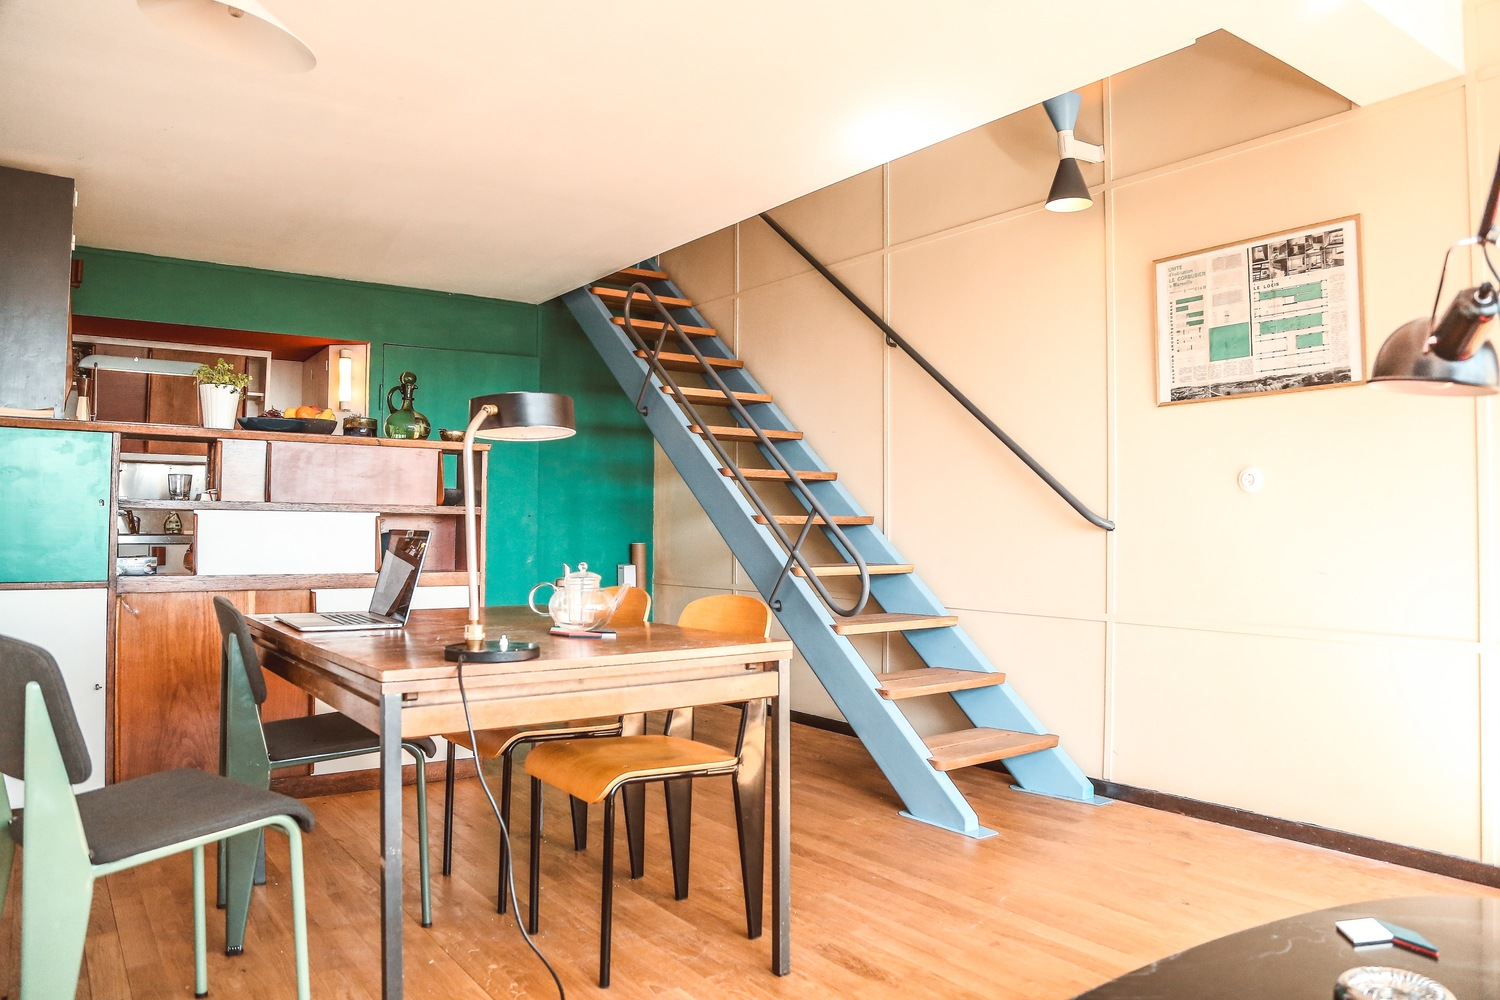 Architect renovates Unité d'Habitation apartment to complete Le Corbusier's original vision